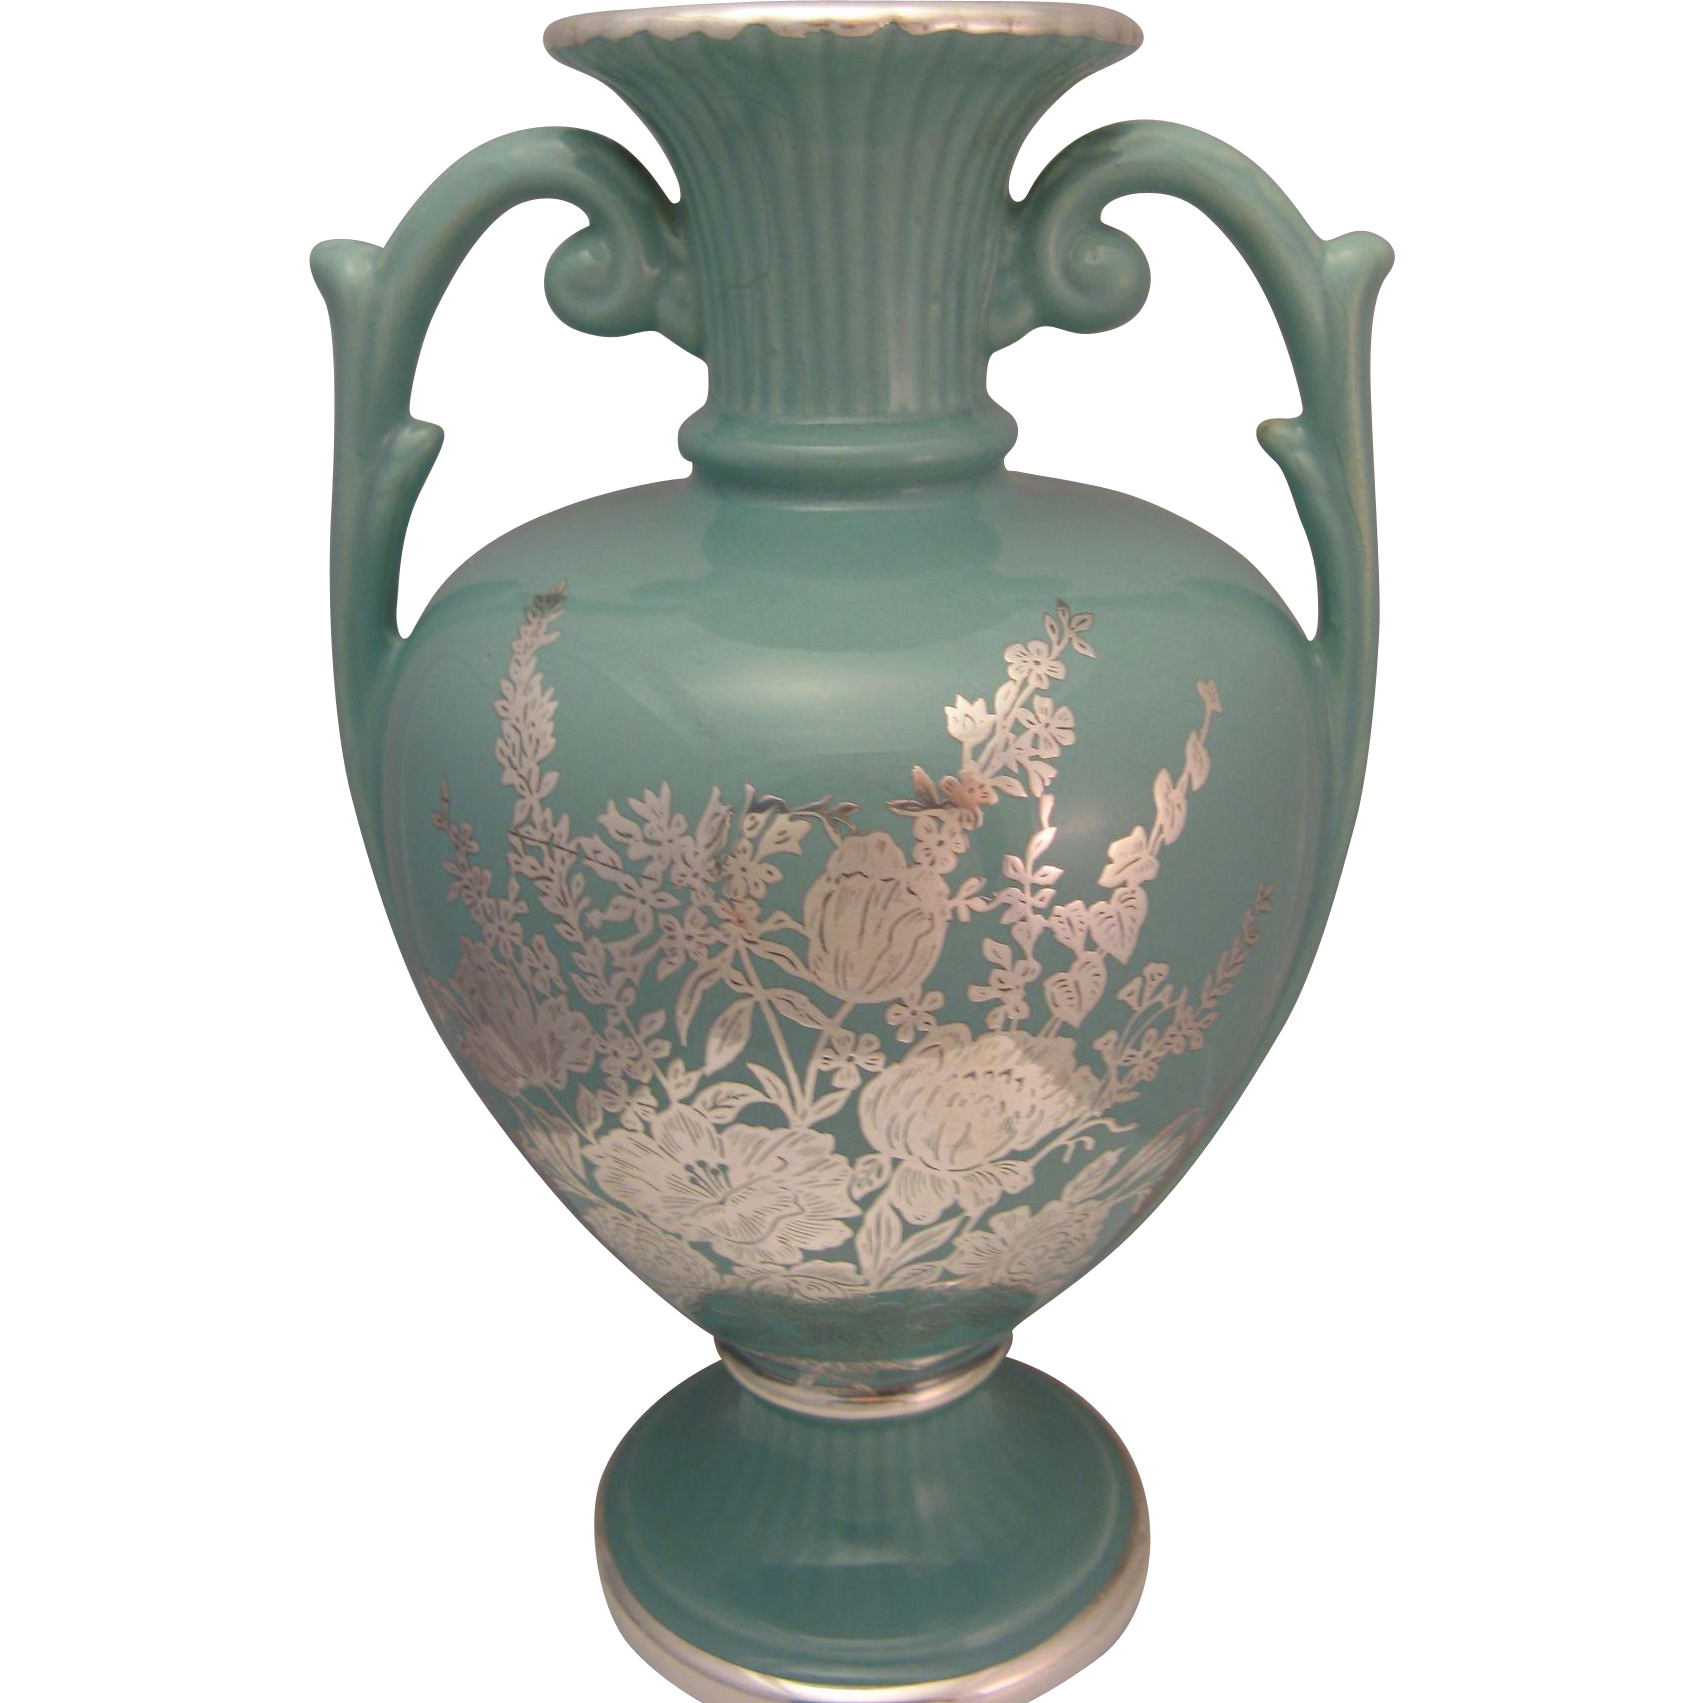 Vintage Sterling Overlay Aqua Blue 9 5 Quot Urn Vase By National Silver From The7hillscollector On